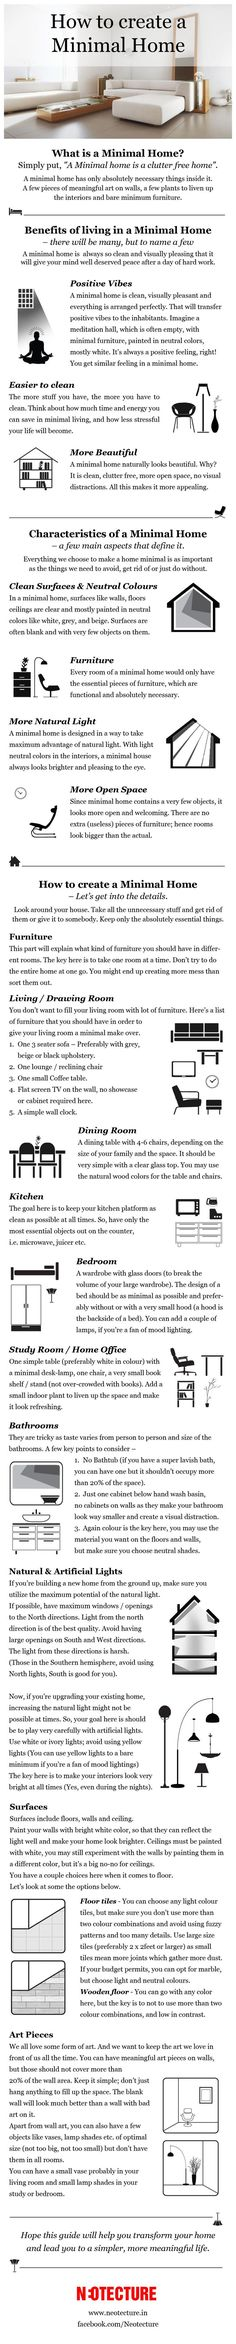 How To Have A Minimalistic Design For Your Home Without Burning Through Your Savings Minimalist Parenting,Minimalism